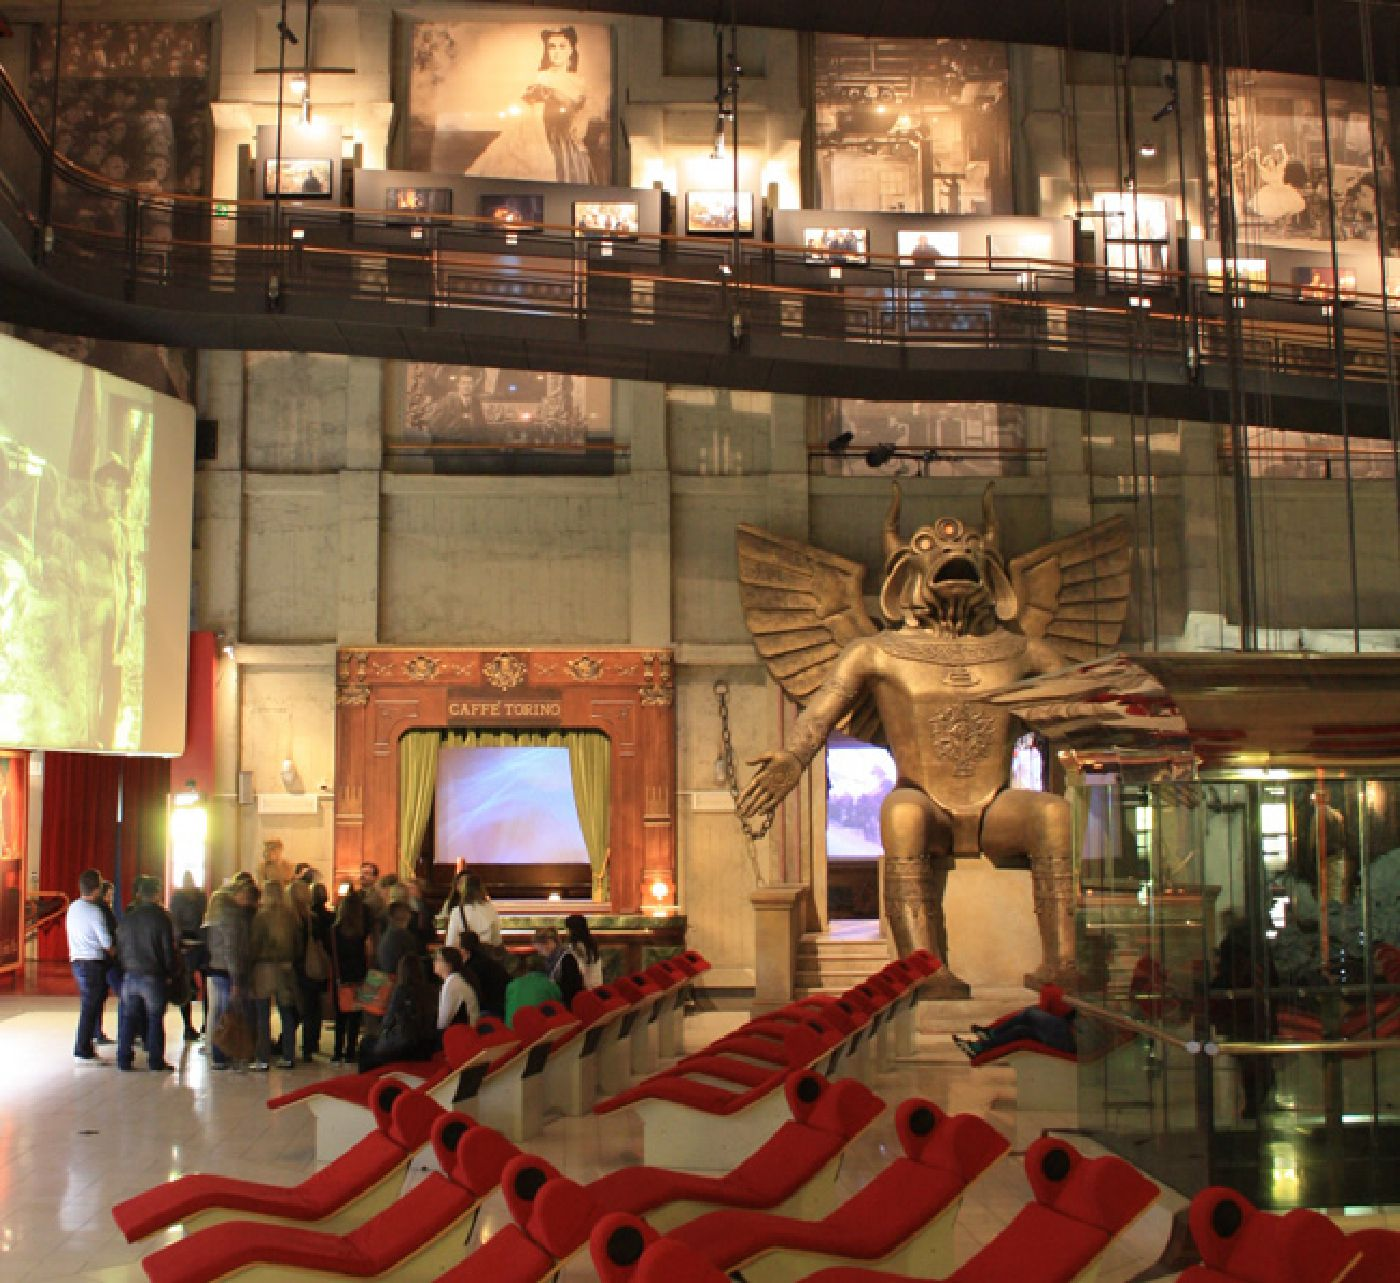 Museo Del Cinema.Museums In Turin Tolove Turin Guide